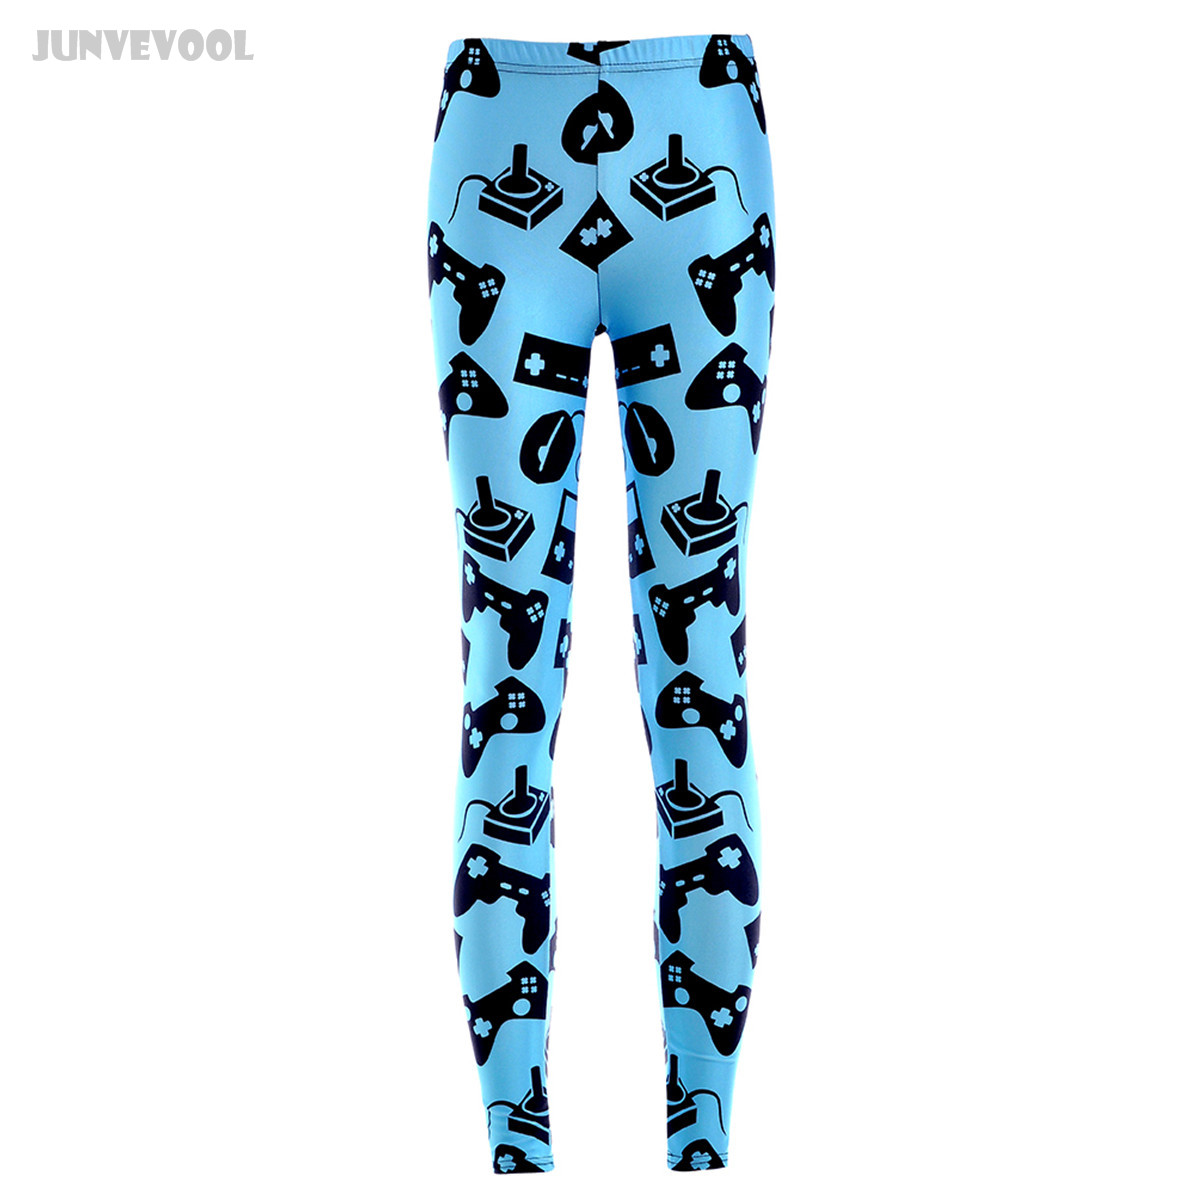 Ropa Gimnasio Mujer Gyms Black Electronic Games Controller Mouse Printed Leggings Fitness Work Out Elastic Runnings Pants Blue